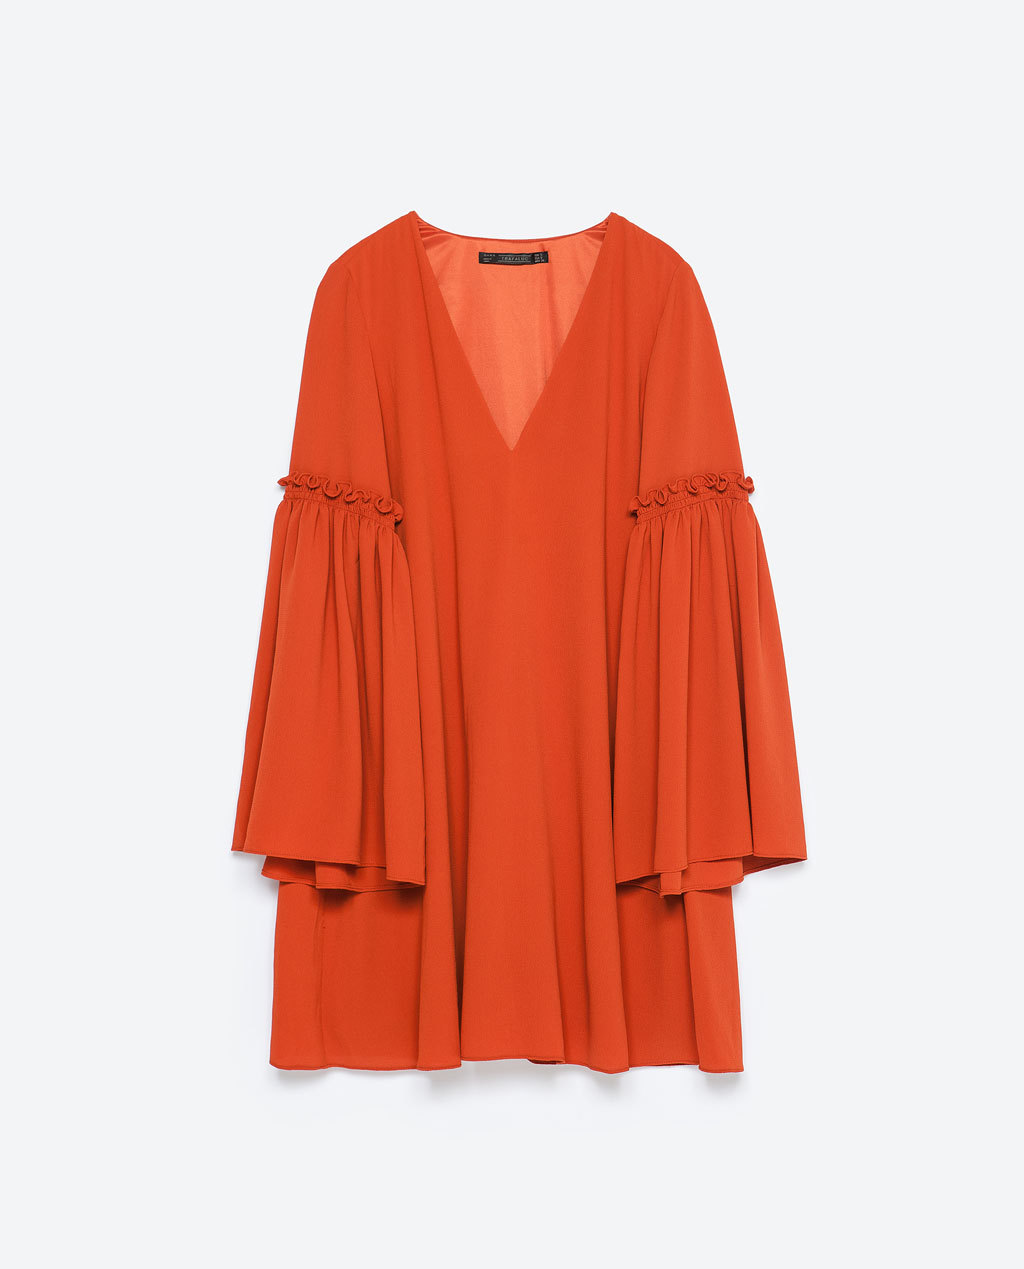 Bell Sleeve Dress - style: tunic; length: mid thigh; neckline: low v-neck; sleeve style: bell sleeve; fit: loose; pattern: plain; predominant colour: bright orange; occasions: casual, evening; sleeve length: long sleeve; pattern type: fabric; texture group: other - light to midweight; season: s/s 2015; wardrobe: highlight